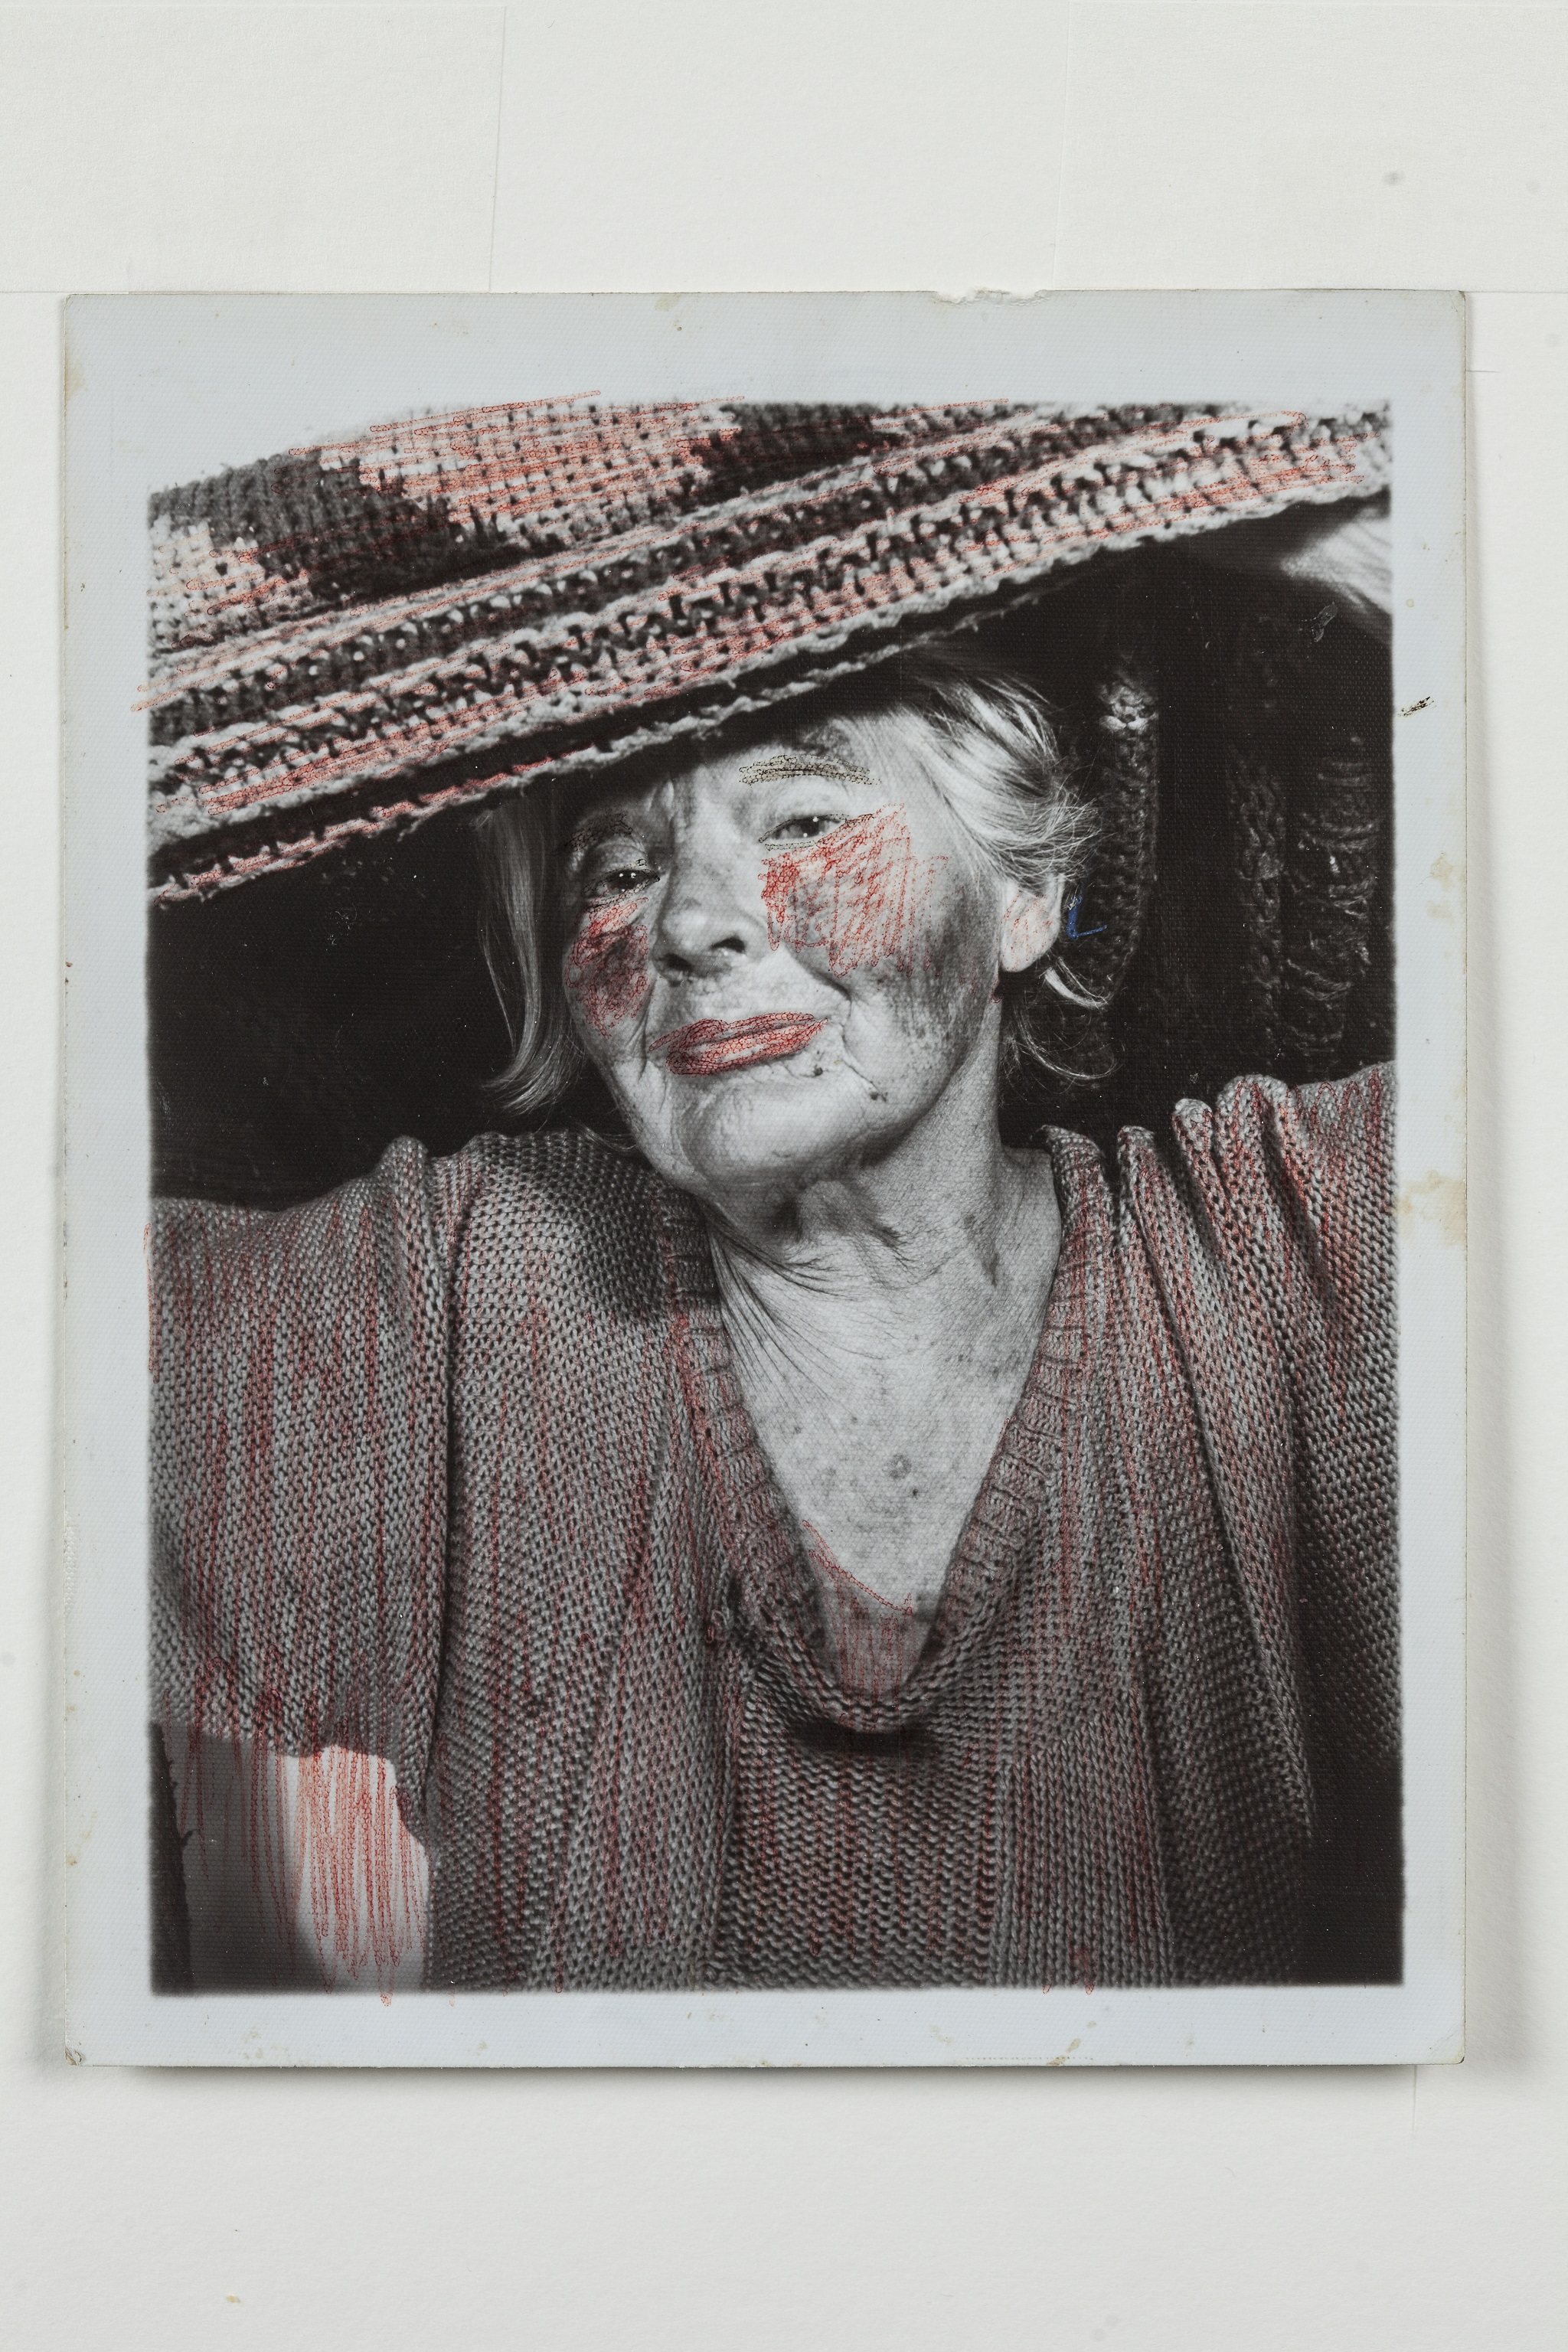 Lee Godie, untitled, n.d.; gelatin silver print and ink; 15 ½ x 14 ¼ in. Collection of Scott H. Lang, IL.